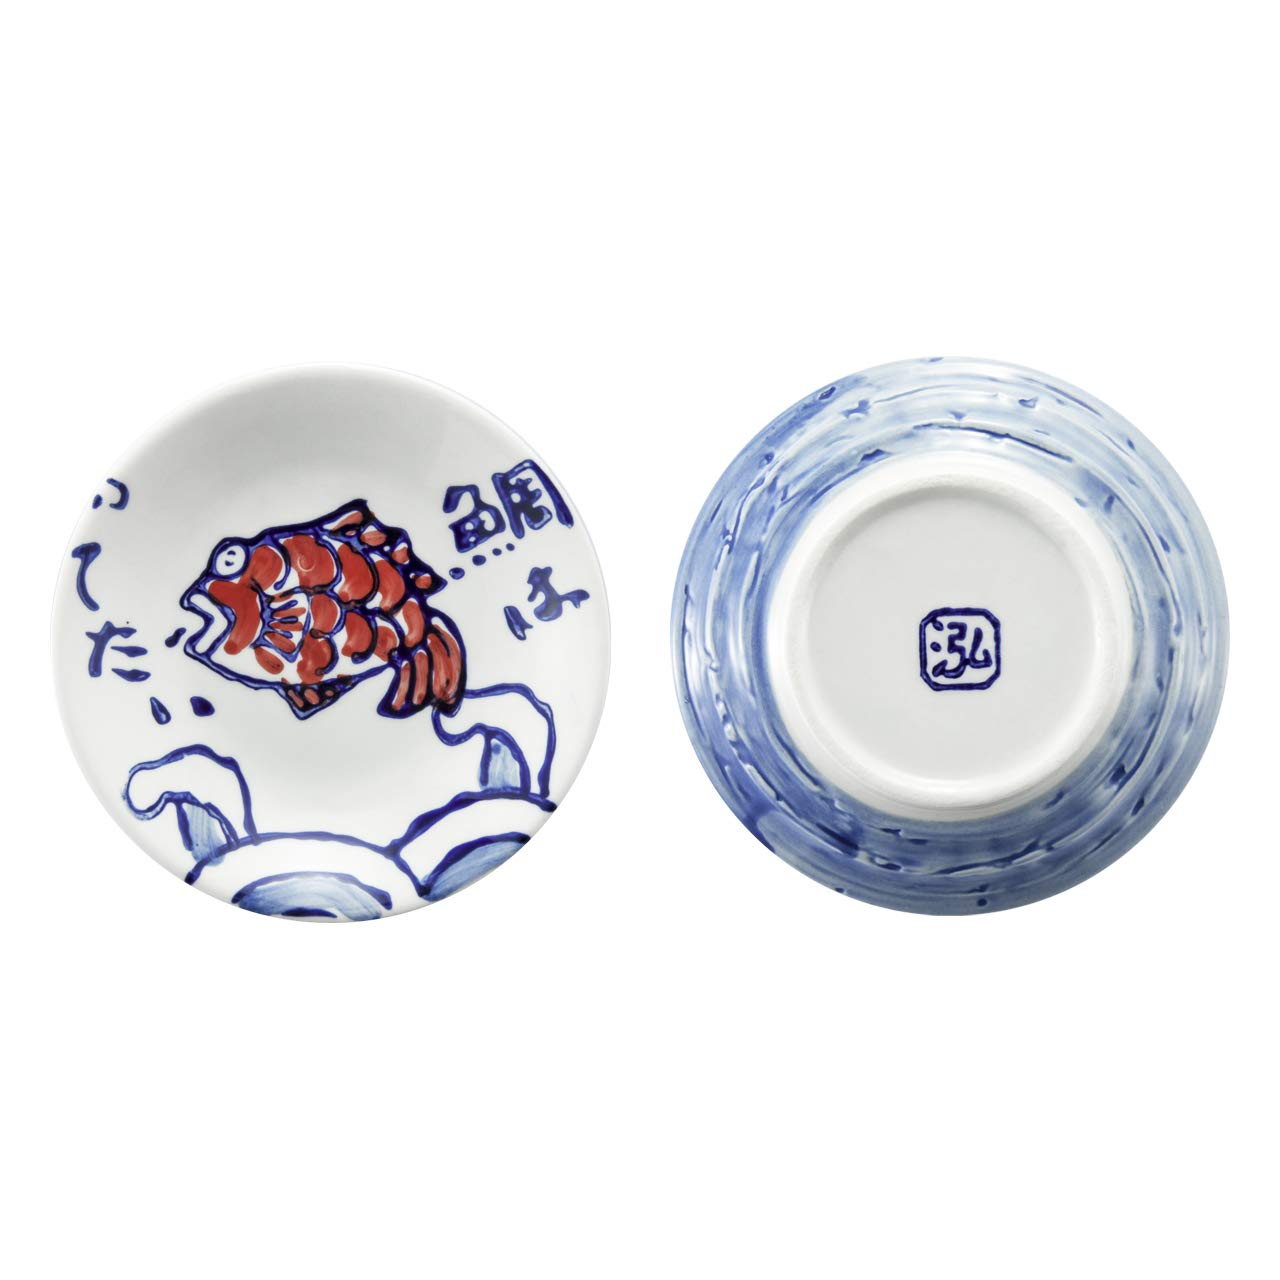 3.75inch Fish Pattern Beautyflier Set of 4 Ceramic Sauce Dish Soy Sauce Dipping Bowls Appetizer Plates Side Dishes Serving Dish Japanese Style Dinnerware Set